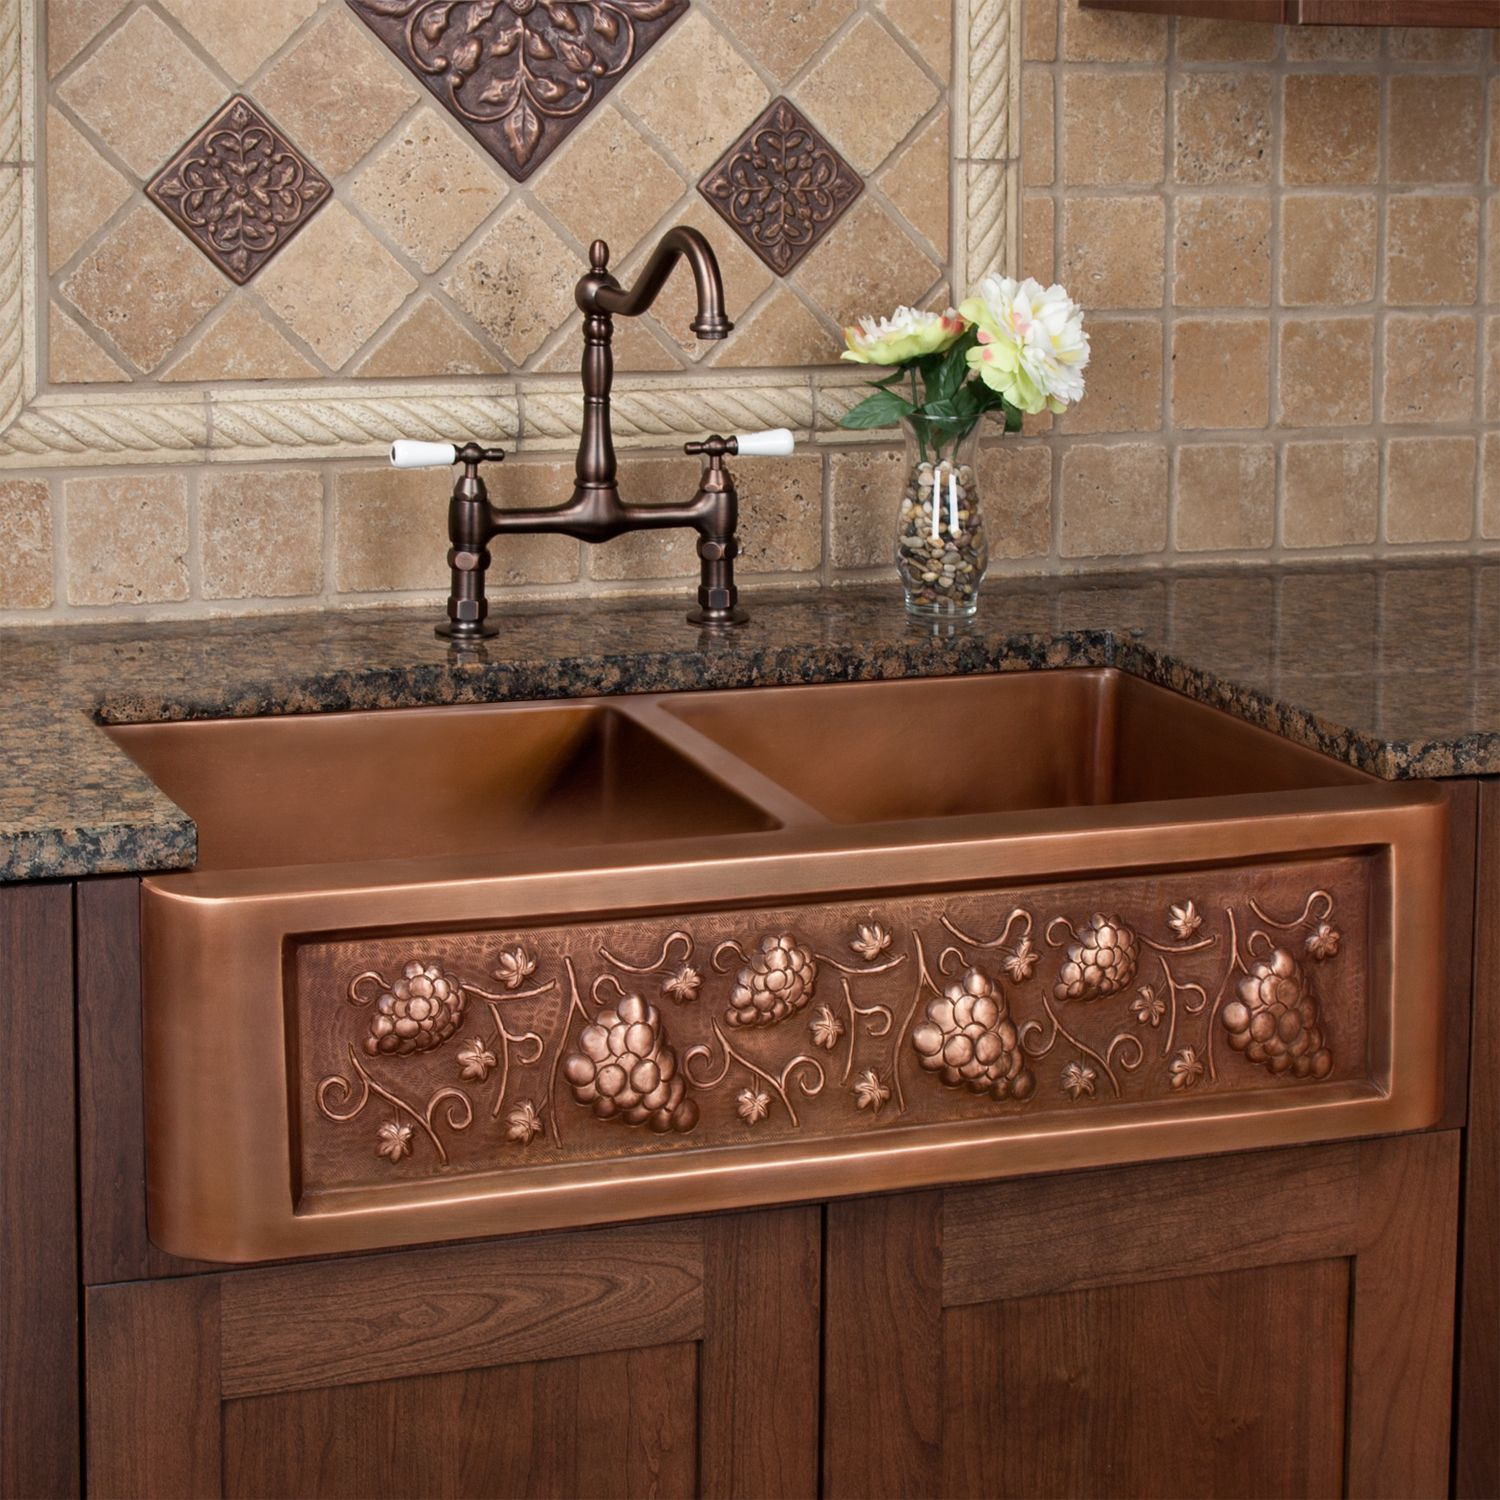 36 Tuscan Series Double Well Copper Farmhouse Sink With Grape